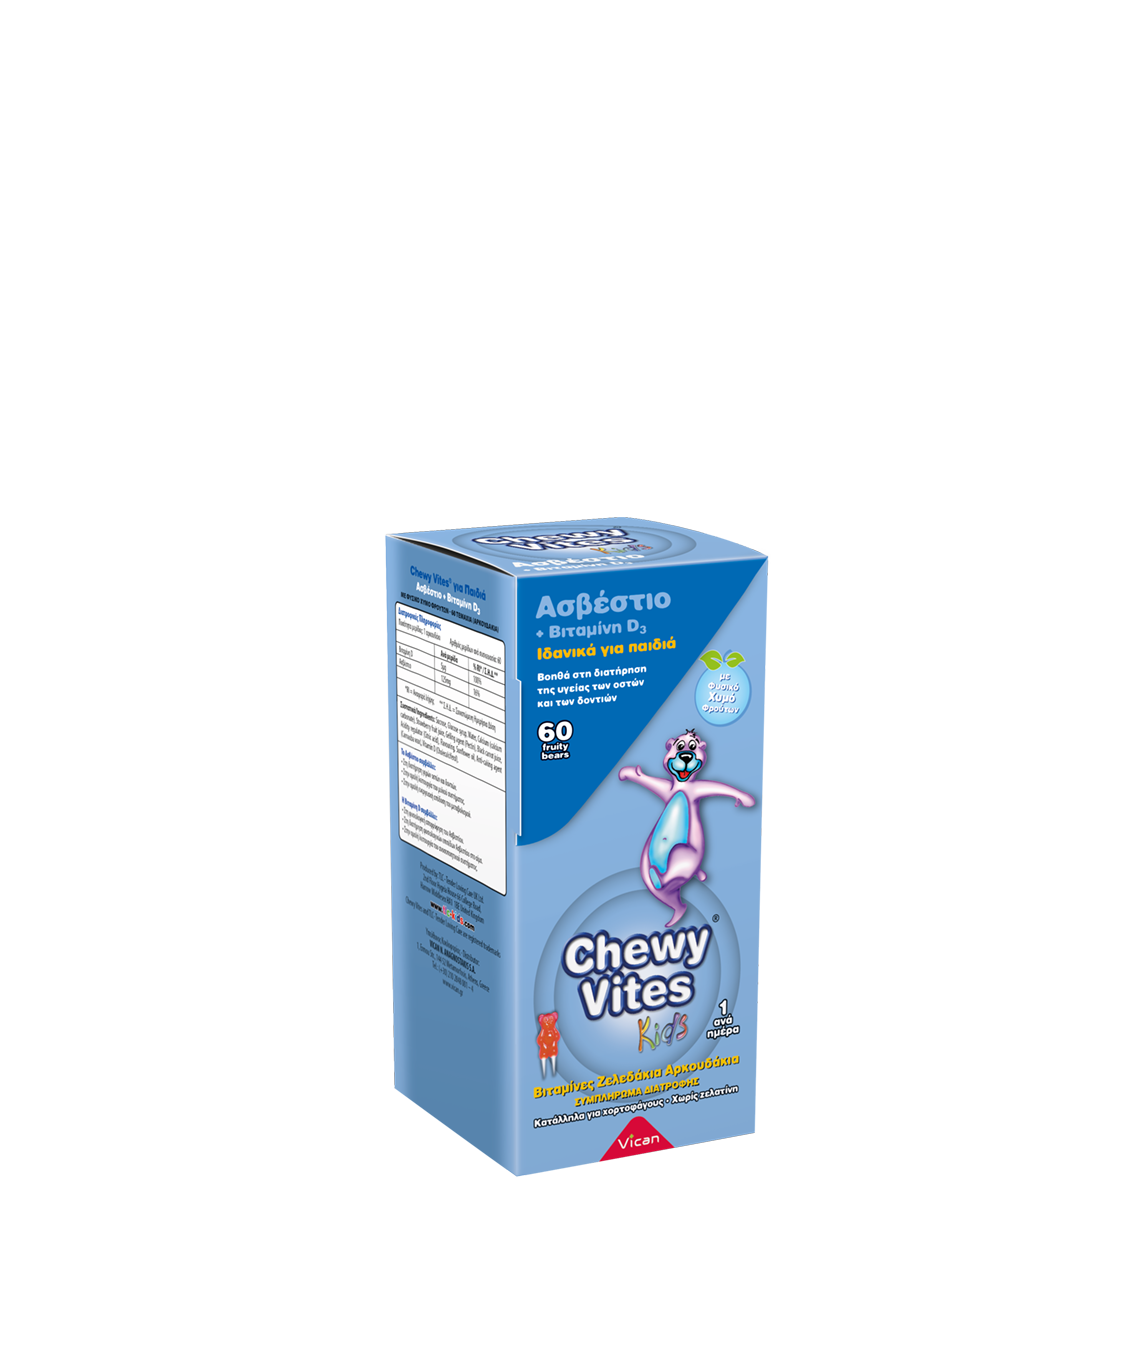 Vican Chewy Vites Jelly Bears Calcium & Vitamin D3 Ζελεδάκια με Ασβέστιο για Παιδιά όλων των ηλικιών, 60 gummies